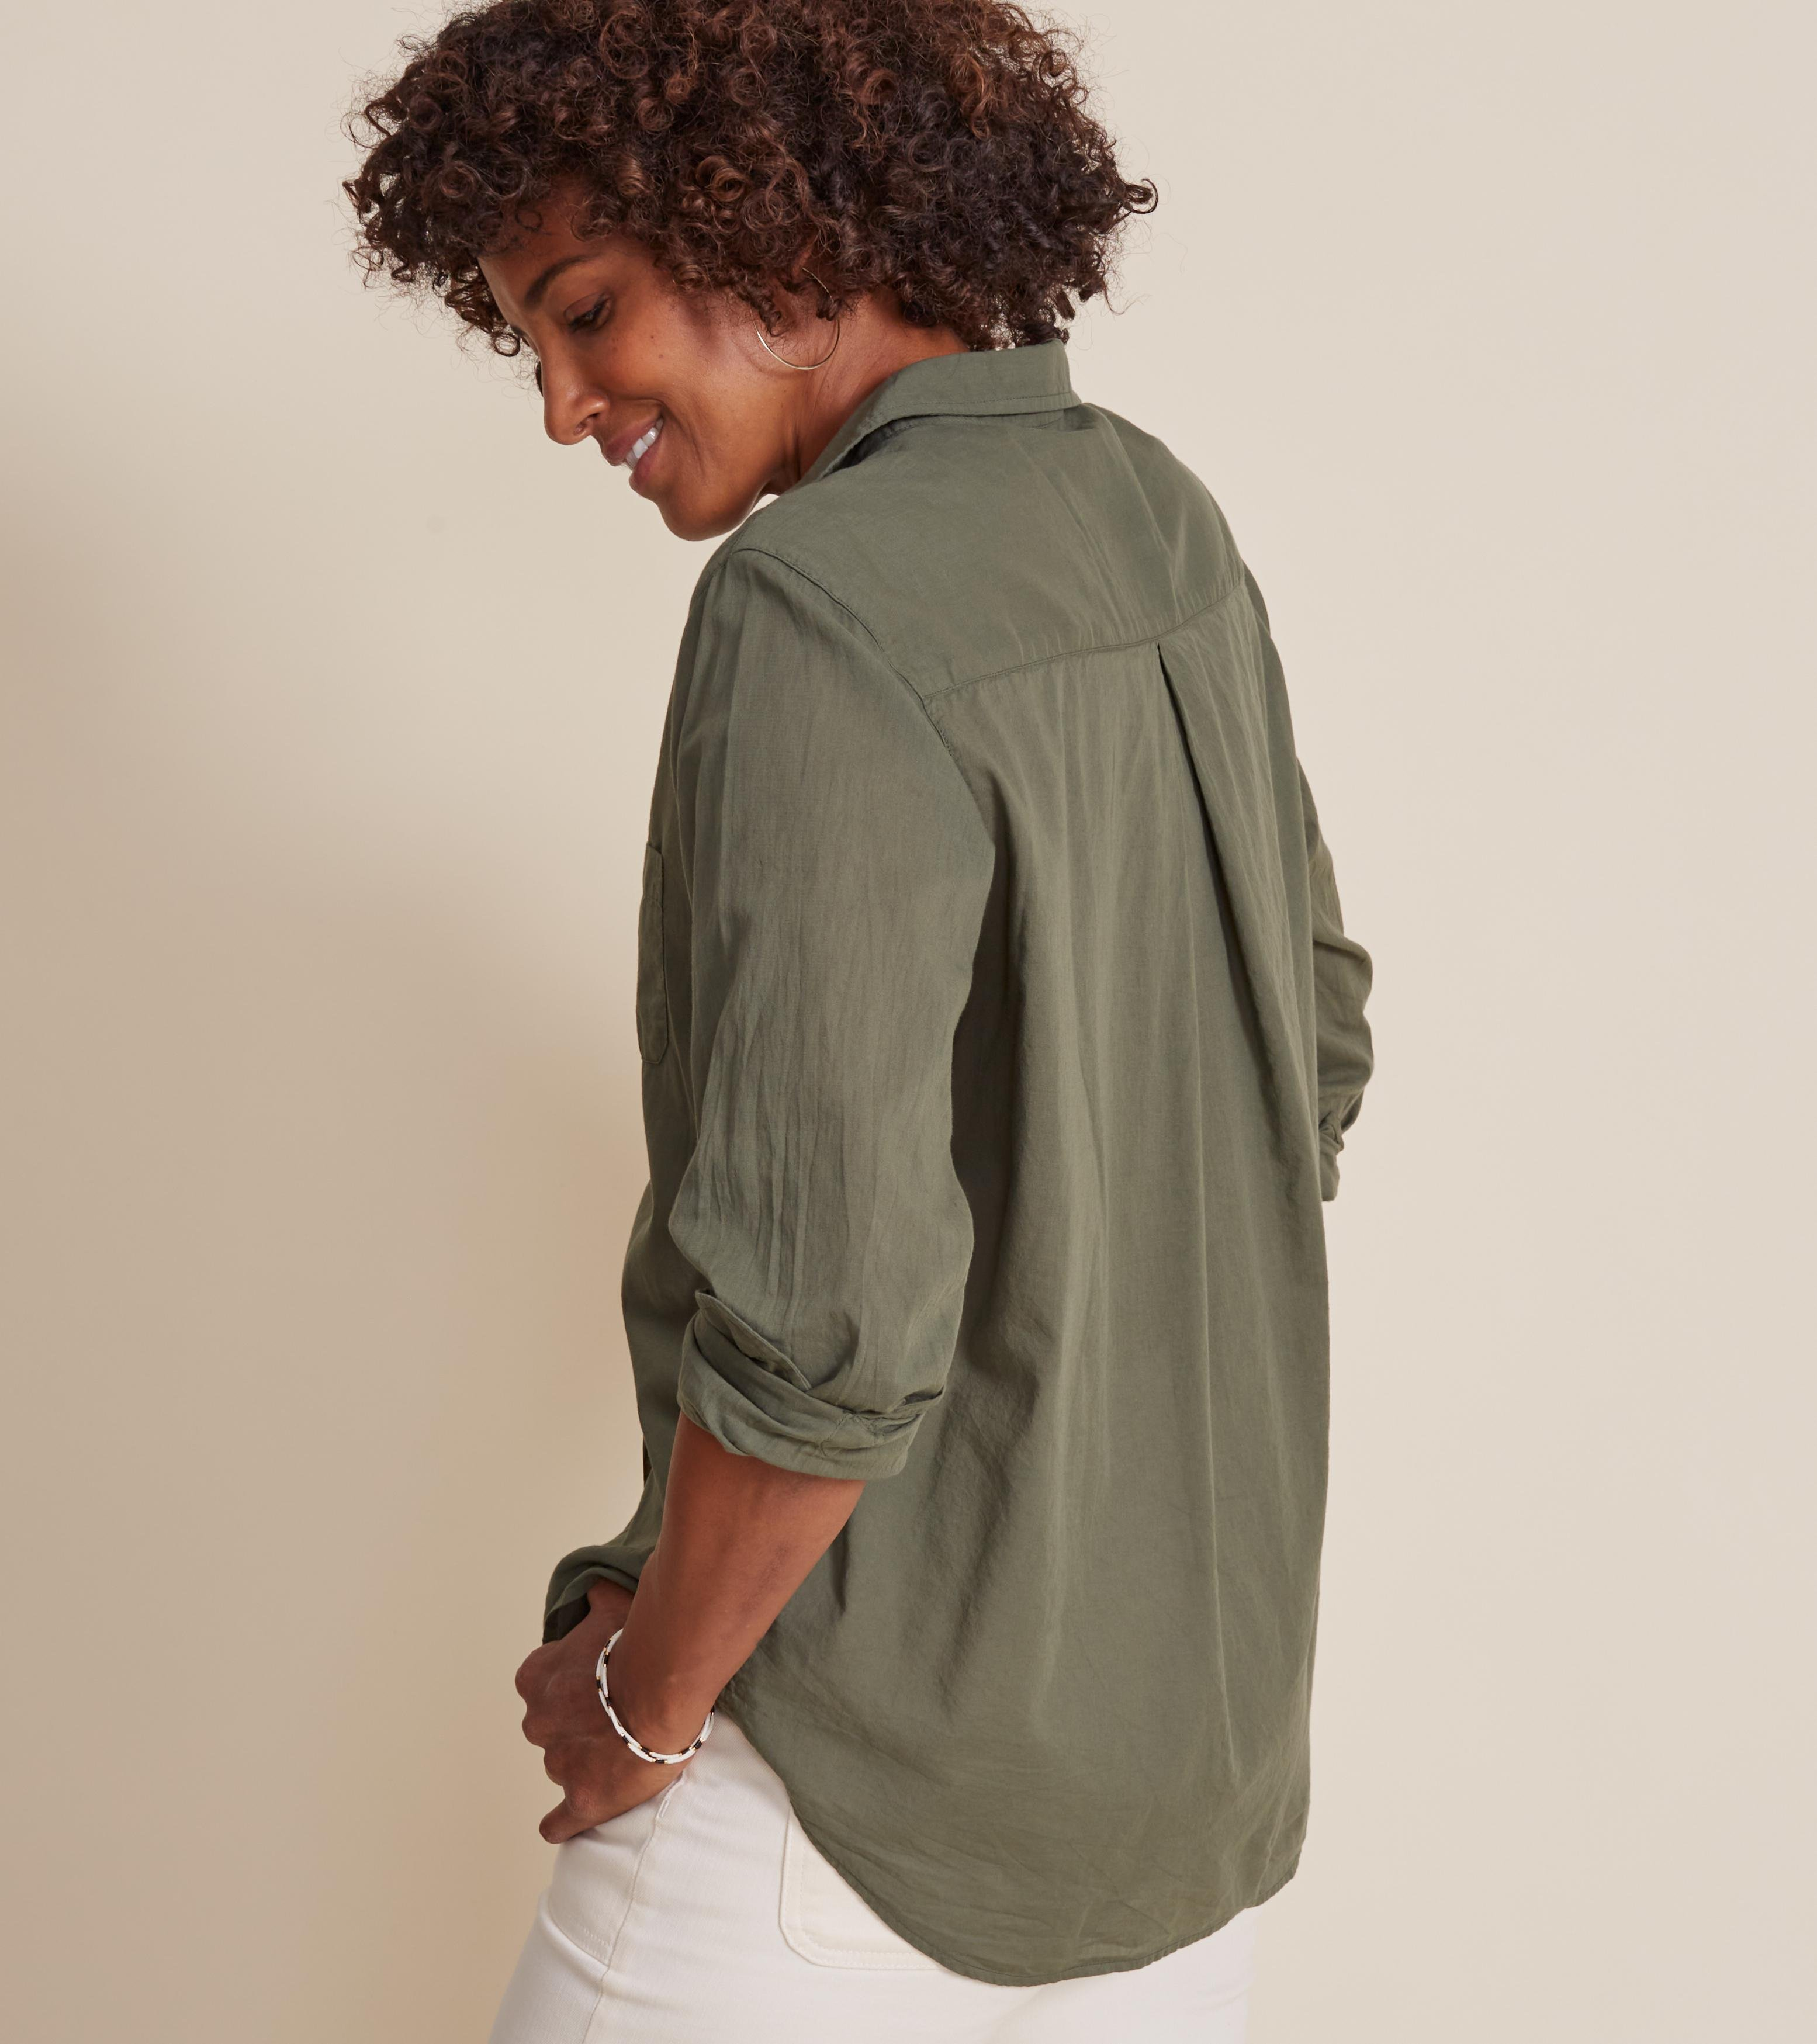 The Hero Button-Up Shirt Army Green, Tissue Cotton 2